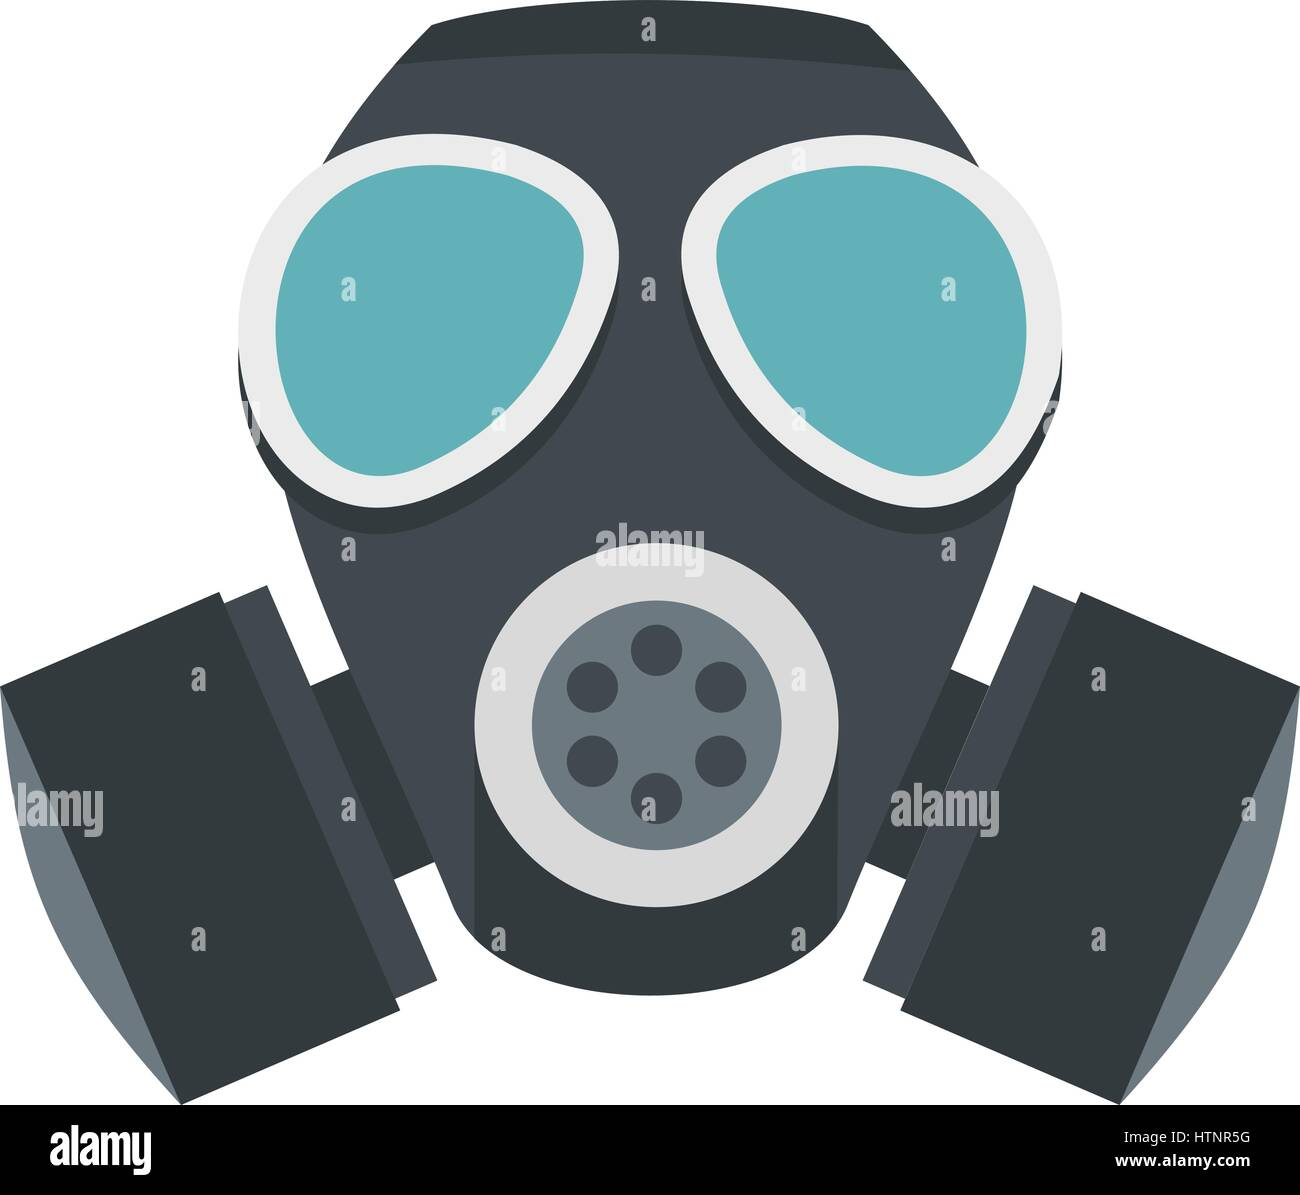 army gas mask icon flat style stock vector art illustration rh alamy com gas mask cartoon picture gas mask cartoon pics